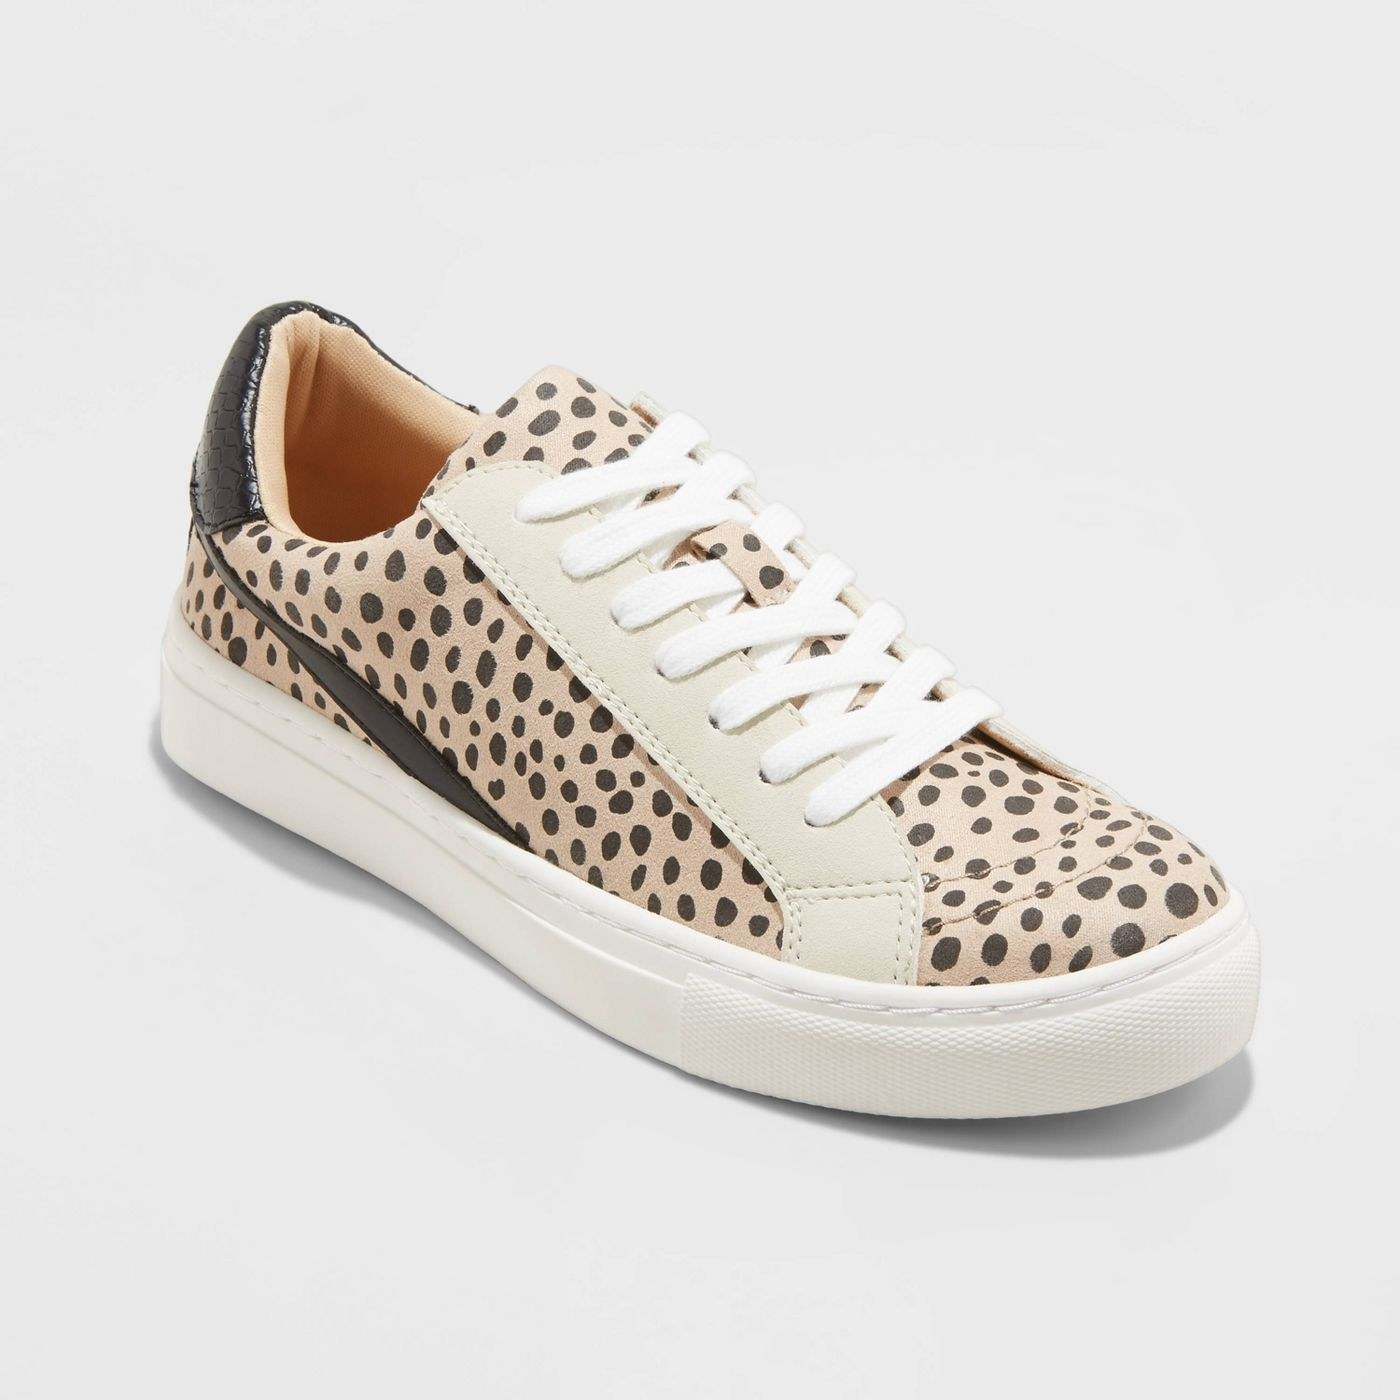 Animal print lace-up sneakers with colorblocking details